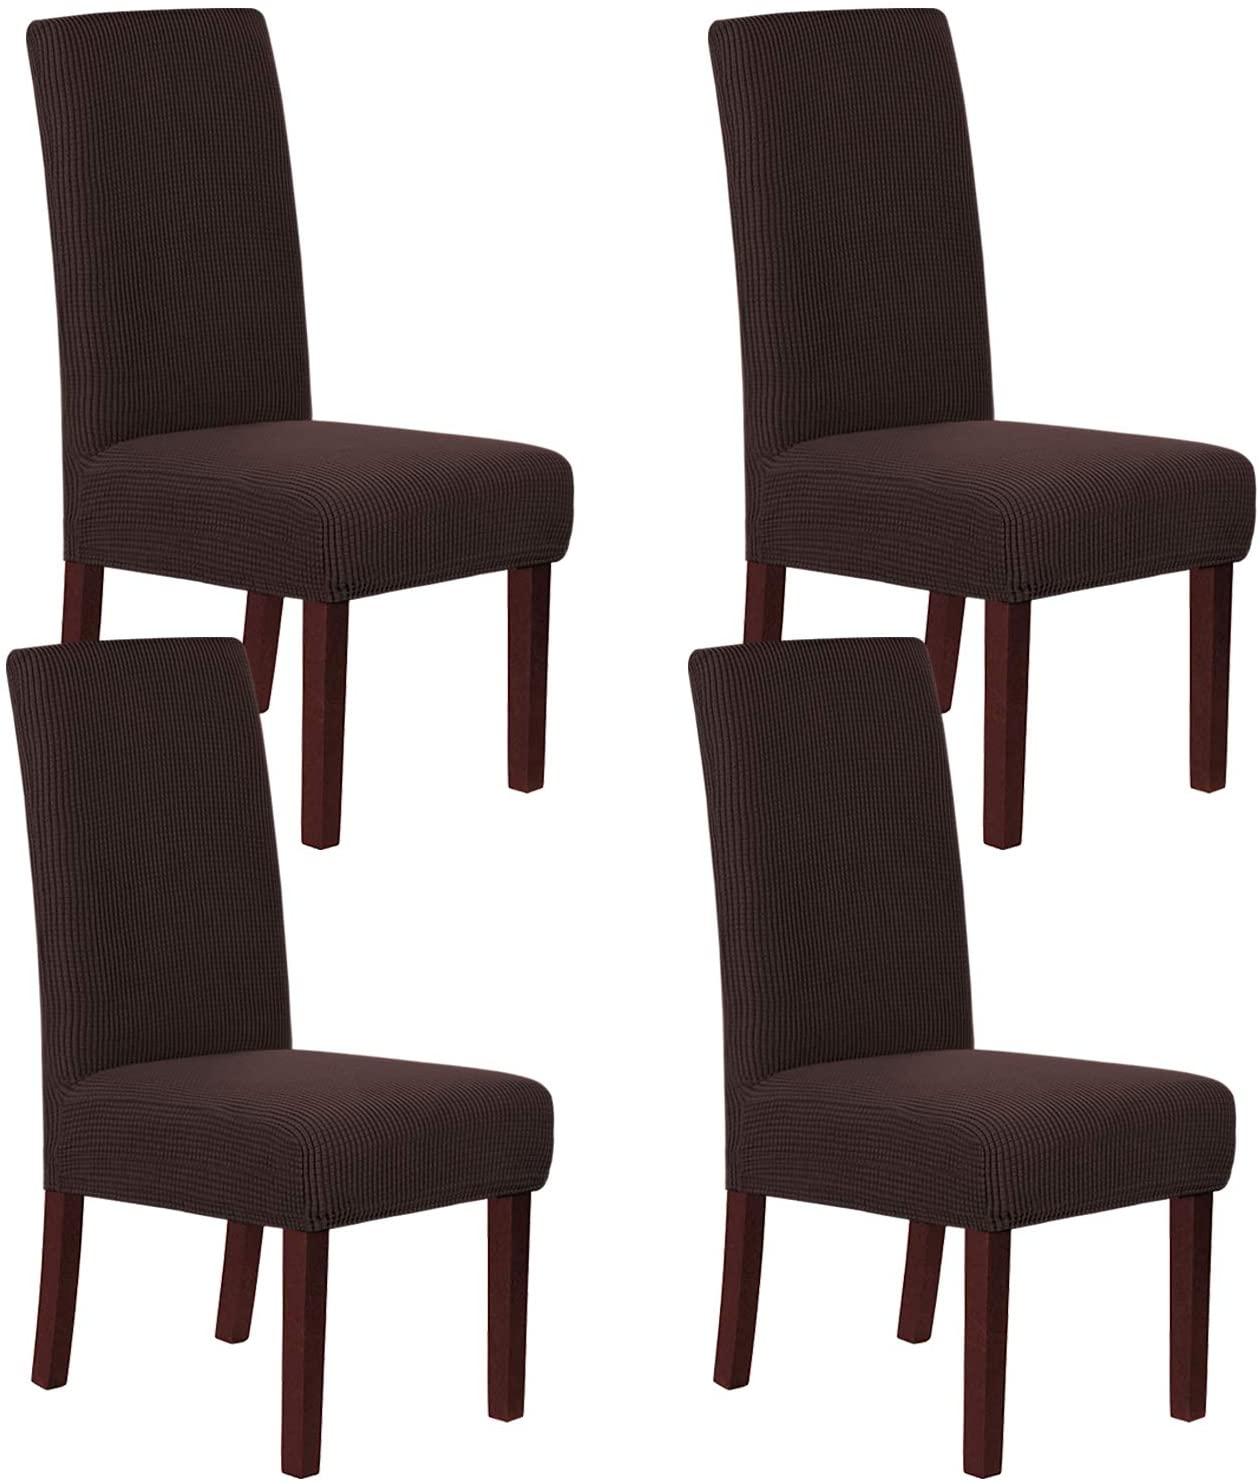 H.VERSAILTEX Stretch Dining Chair Covers Chair Covers for Dining Room Set of 4 Parson Chair Covers Slipcovers Chair Protectors Covers Dining, Feature Textured Checked Jacquard Fabric, Chocolate